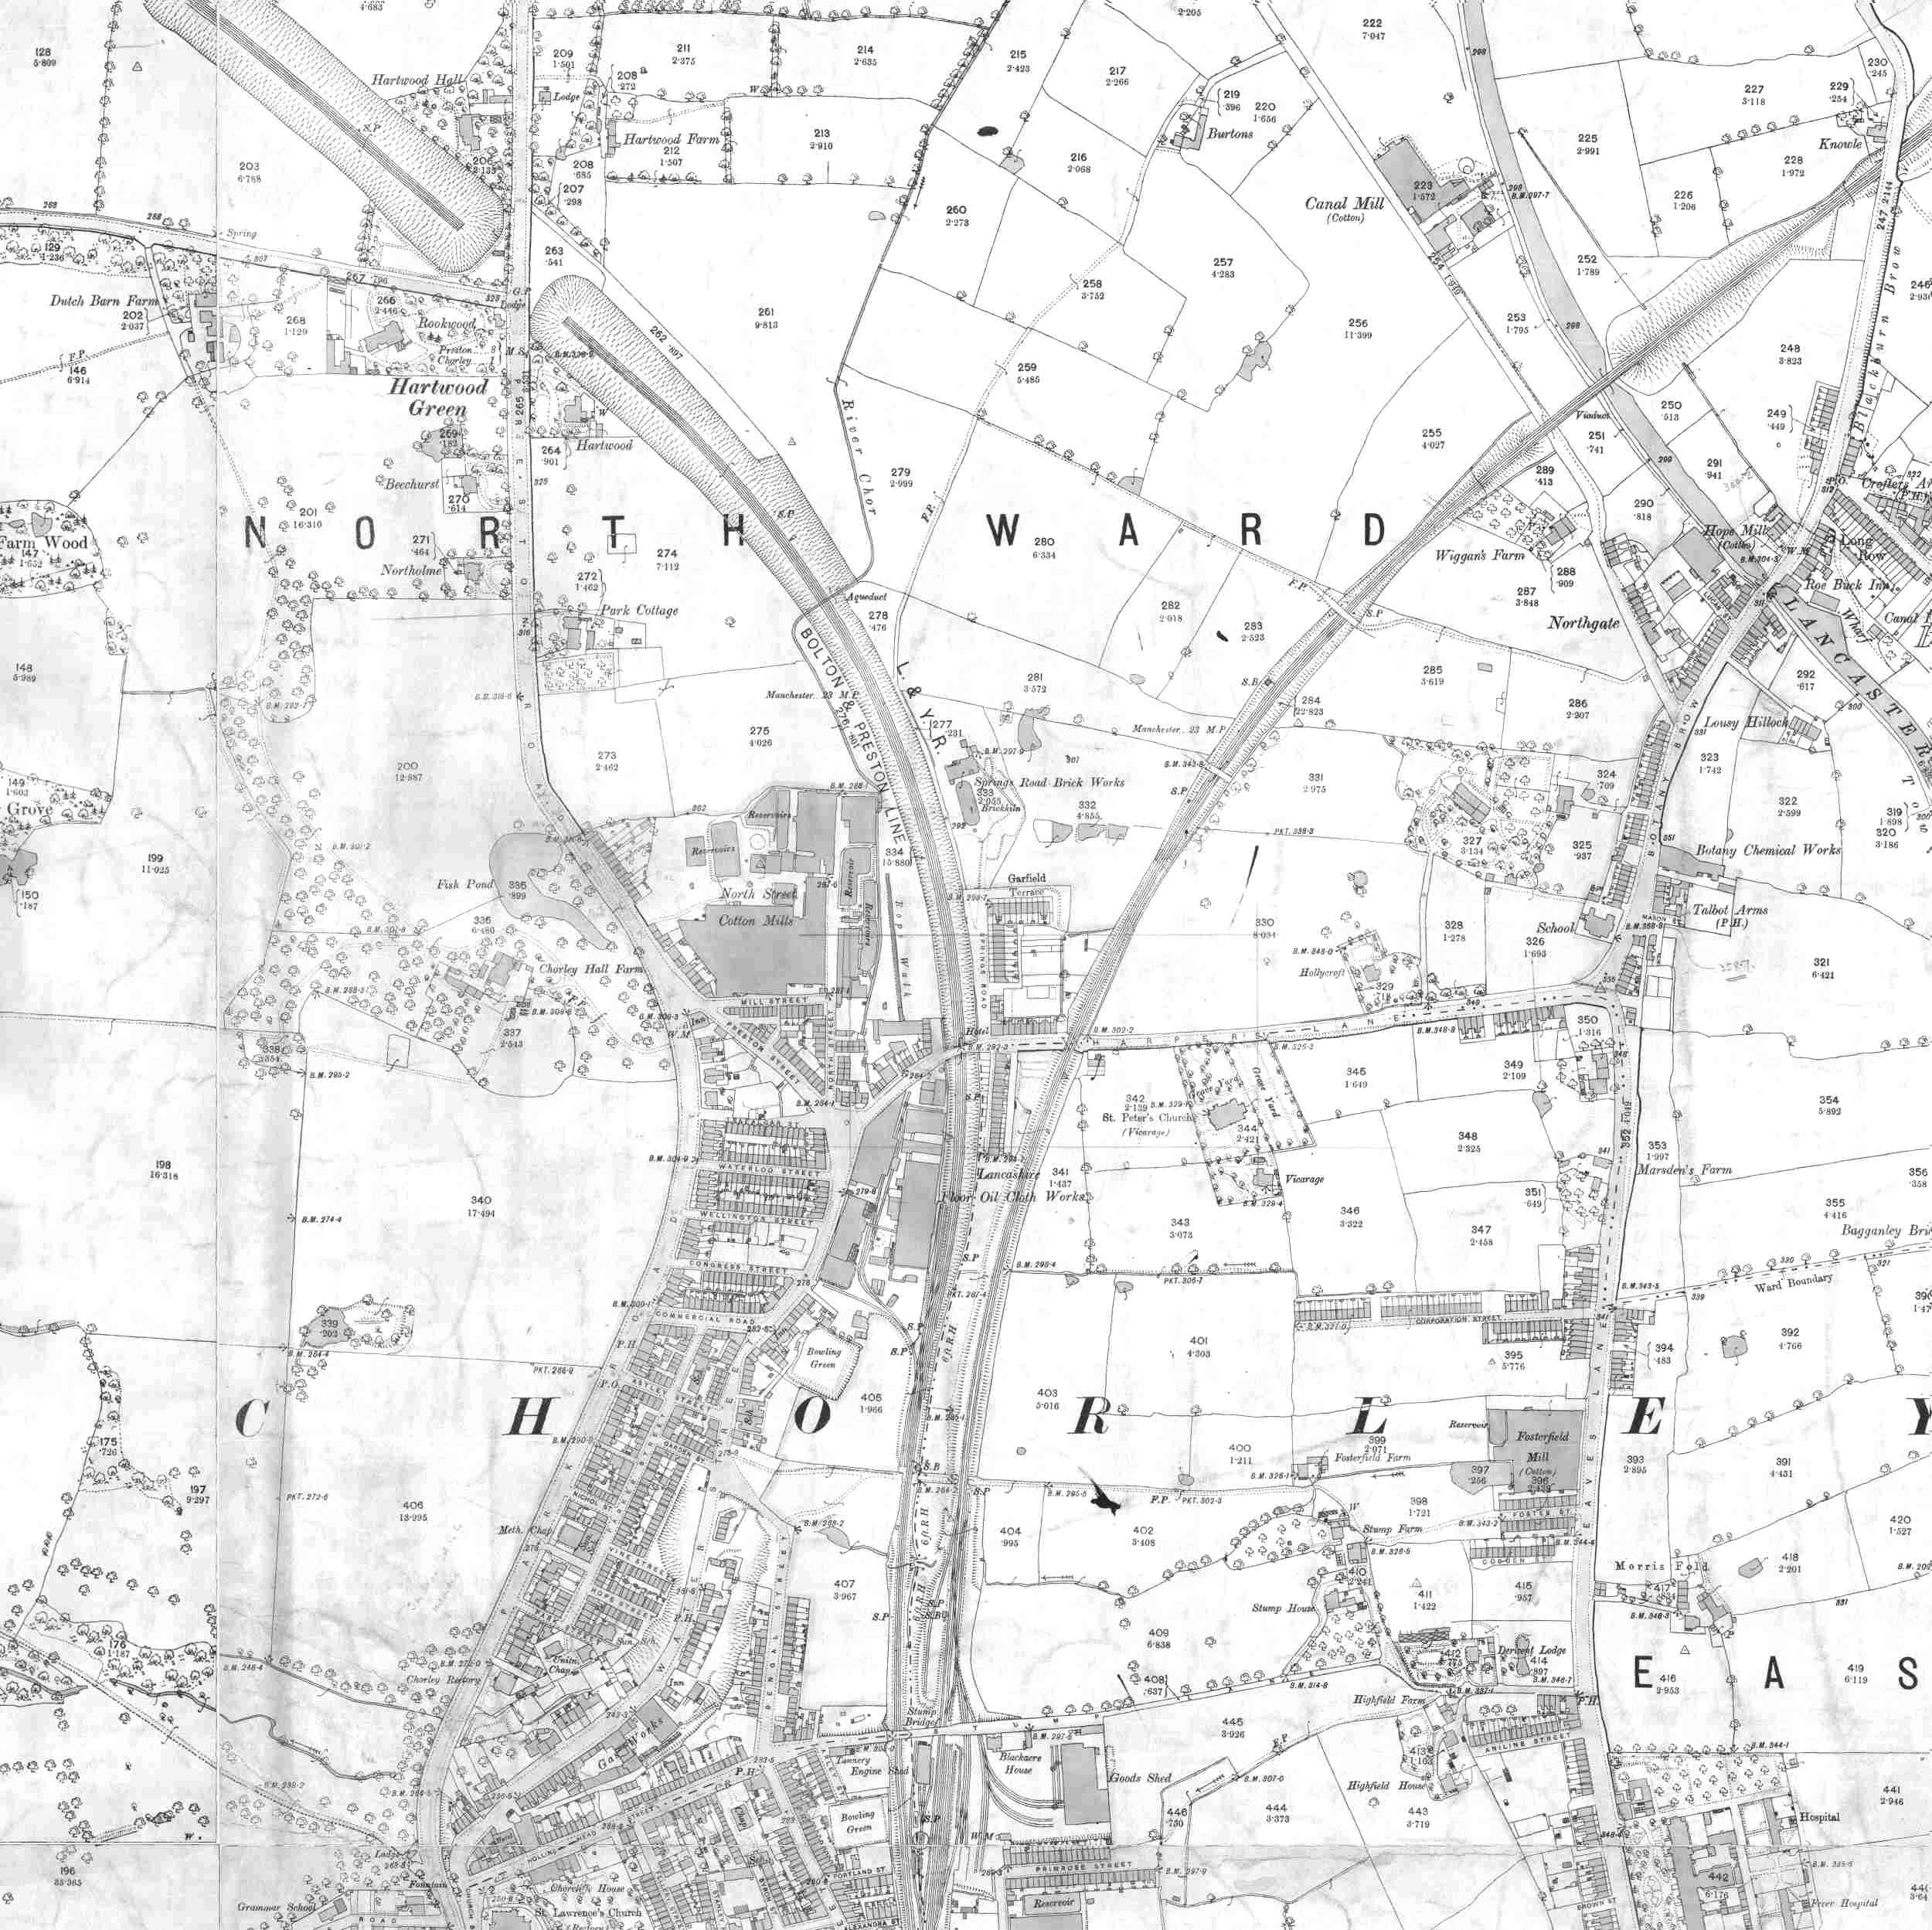 Lancashire County Council Environment Directorate Old Maps